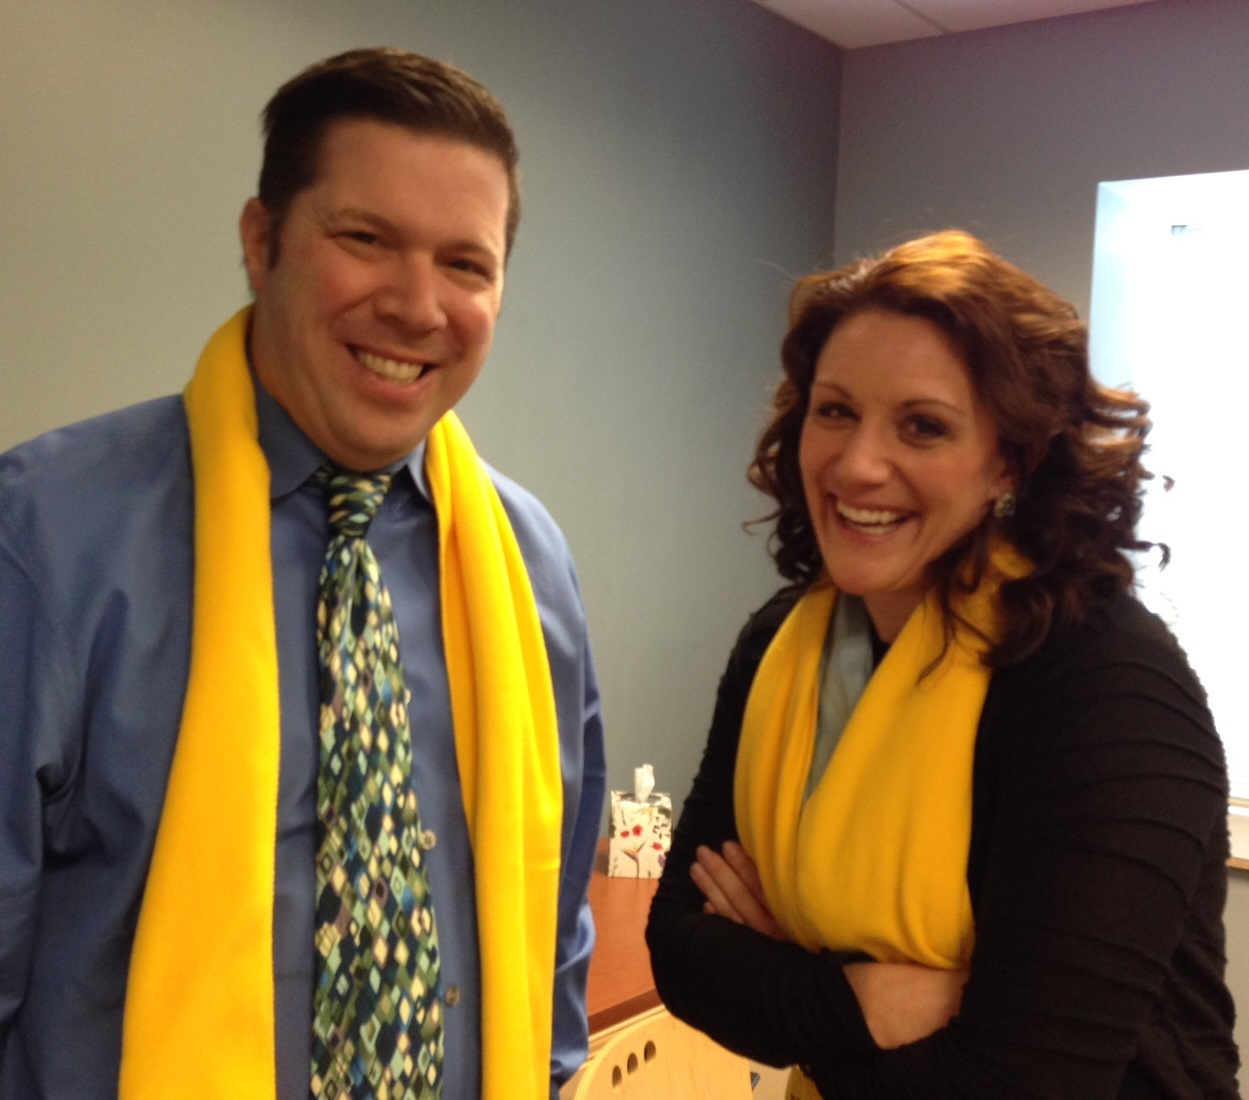 Photo of Admins NSCW Dan and Allison